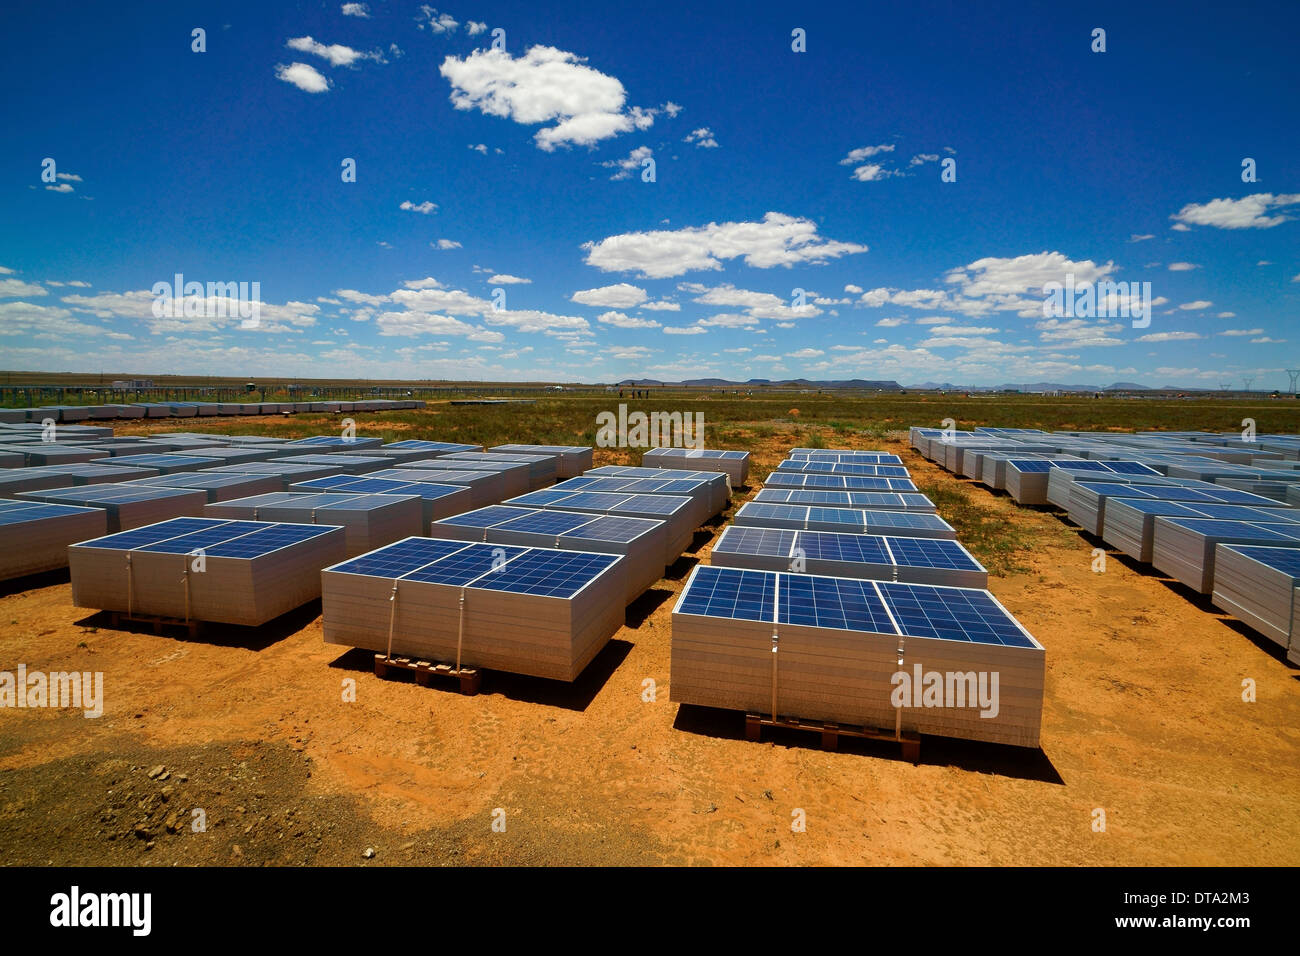 Jinko Solar photovoltaic systems by Scatec Solar, Karoo semi-desert near Hanover, Northern Cape, South Africa - Stock Image